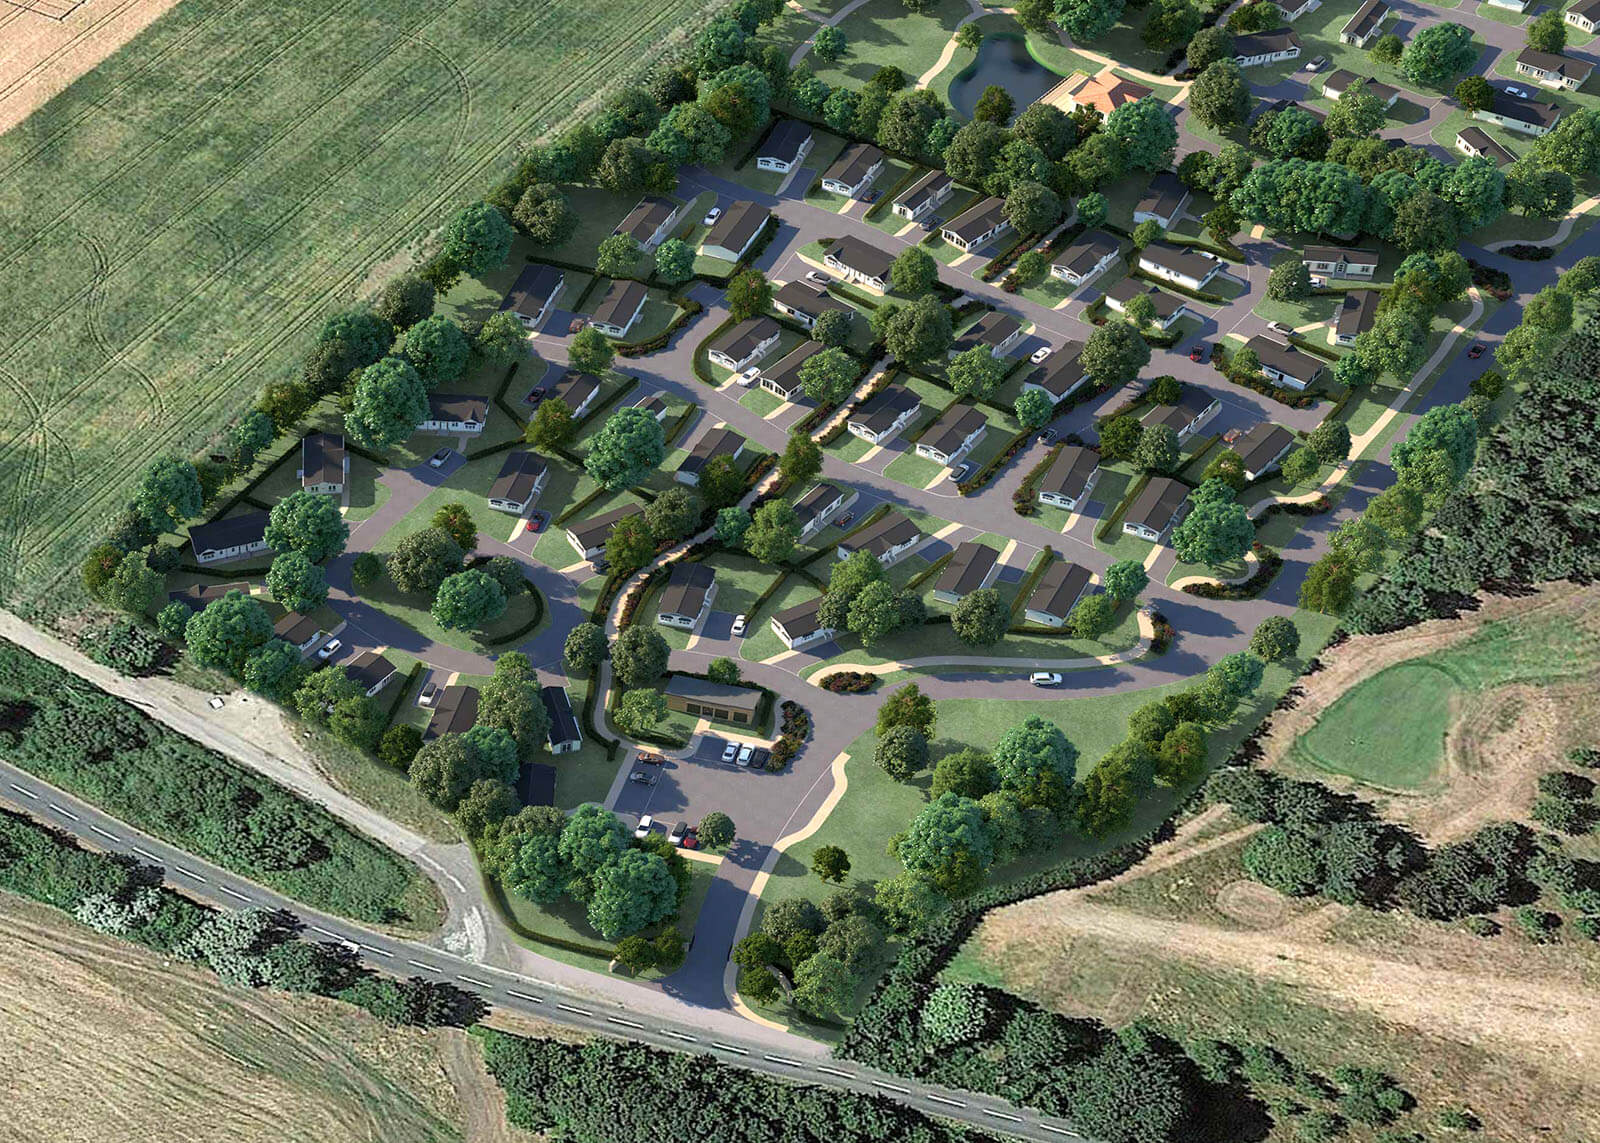 Gateforth Park CGI image Phase 1